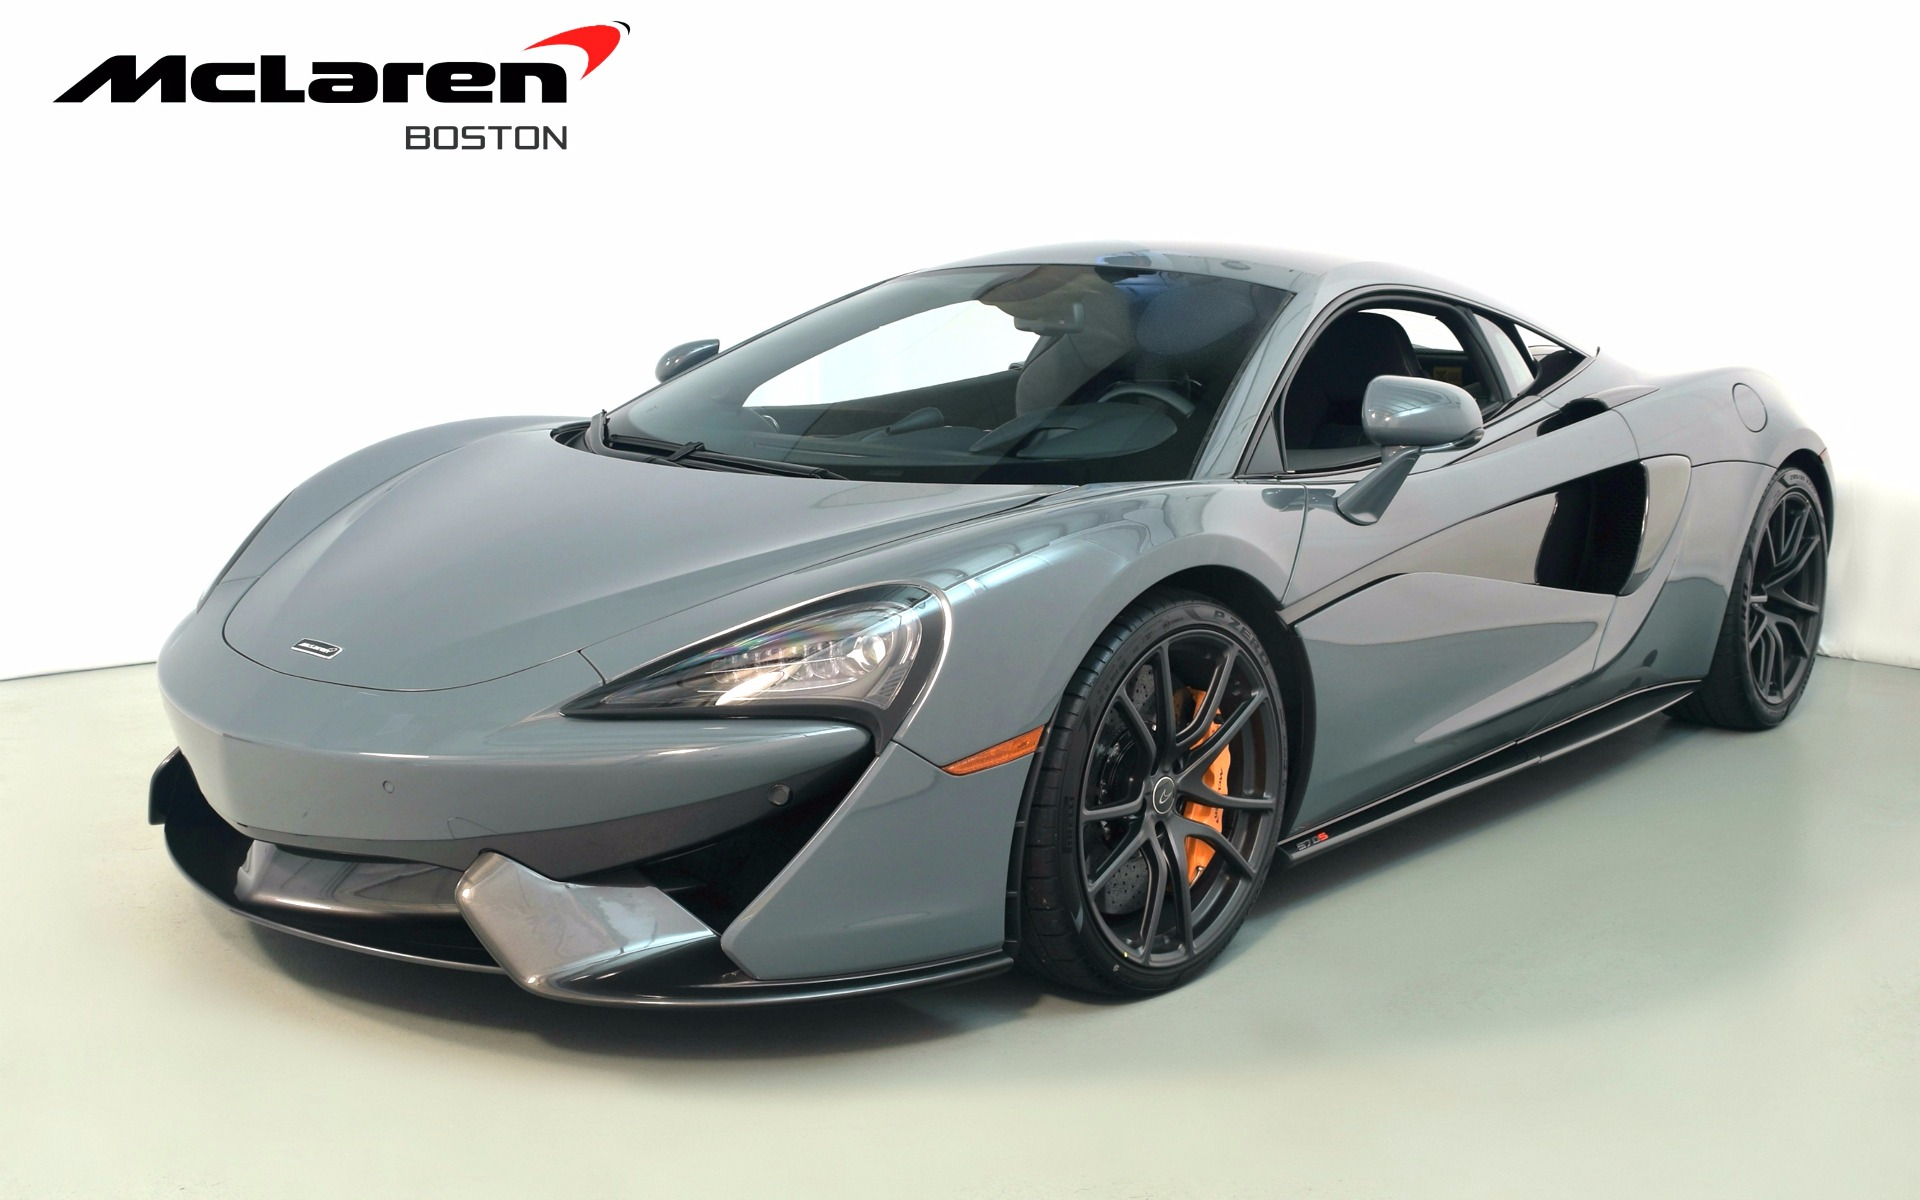 Mclaren Price 2017 >> 2017 McLaren 570s For Sale in Norwell, MA 001805 | Mclaren Boston